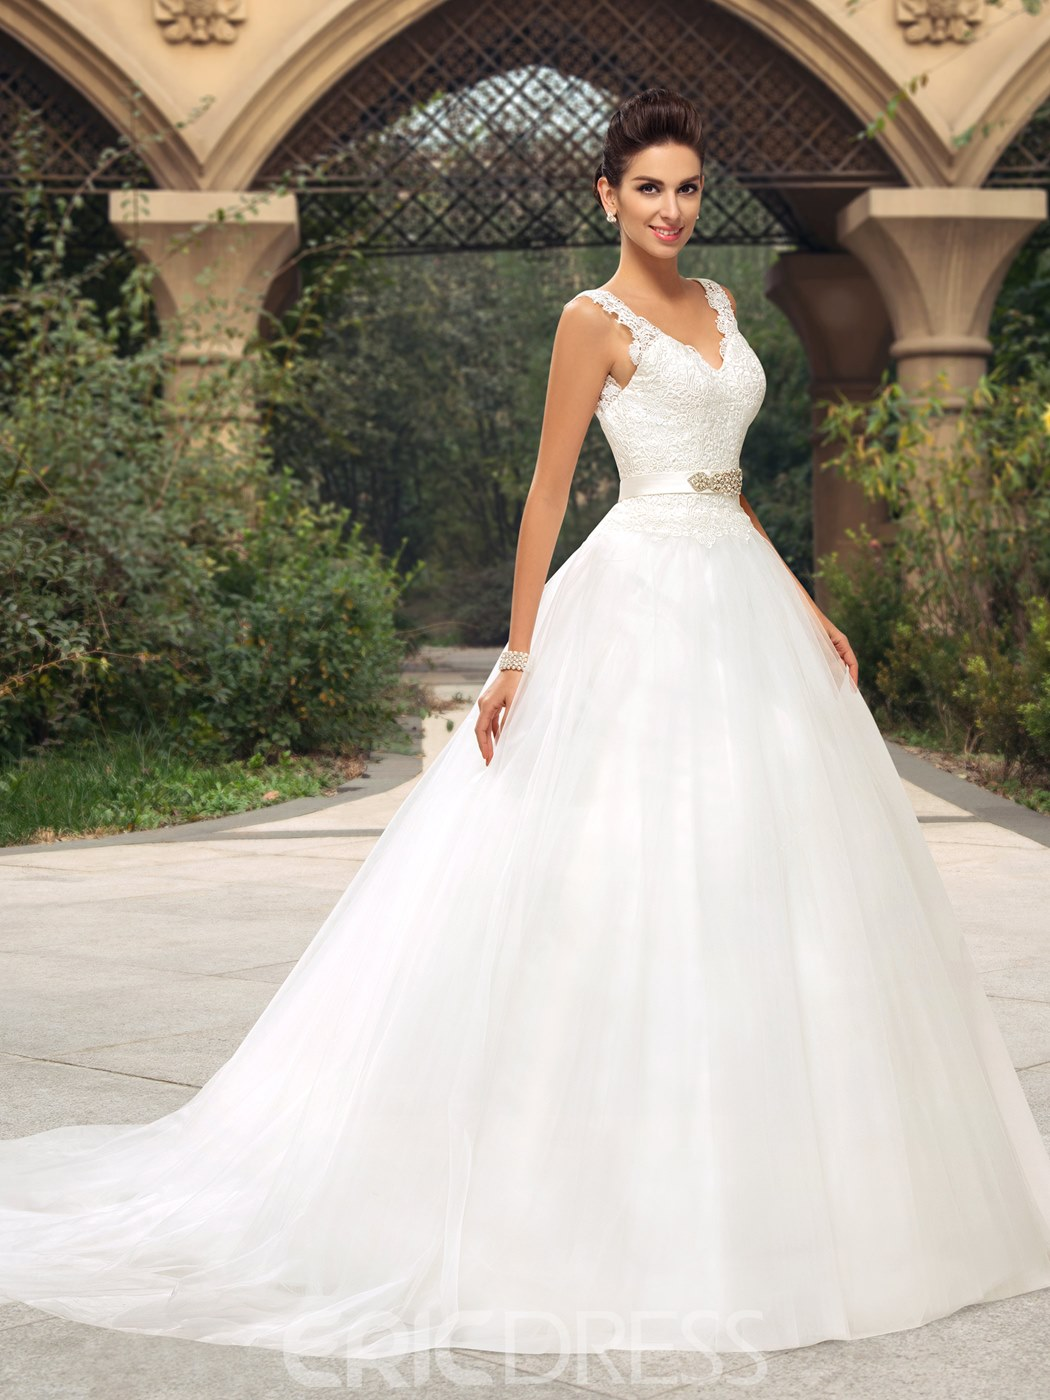 Classy Lace V-Neck Zipper-Up A-Line Wedding Dress